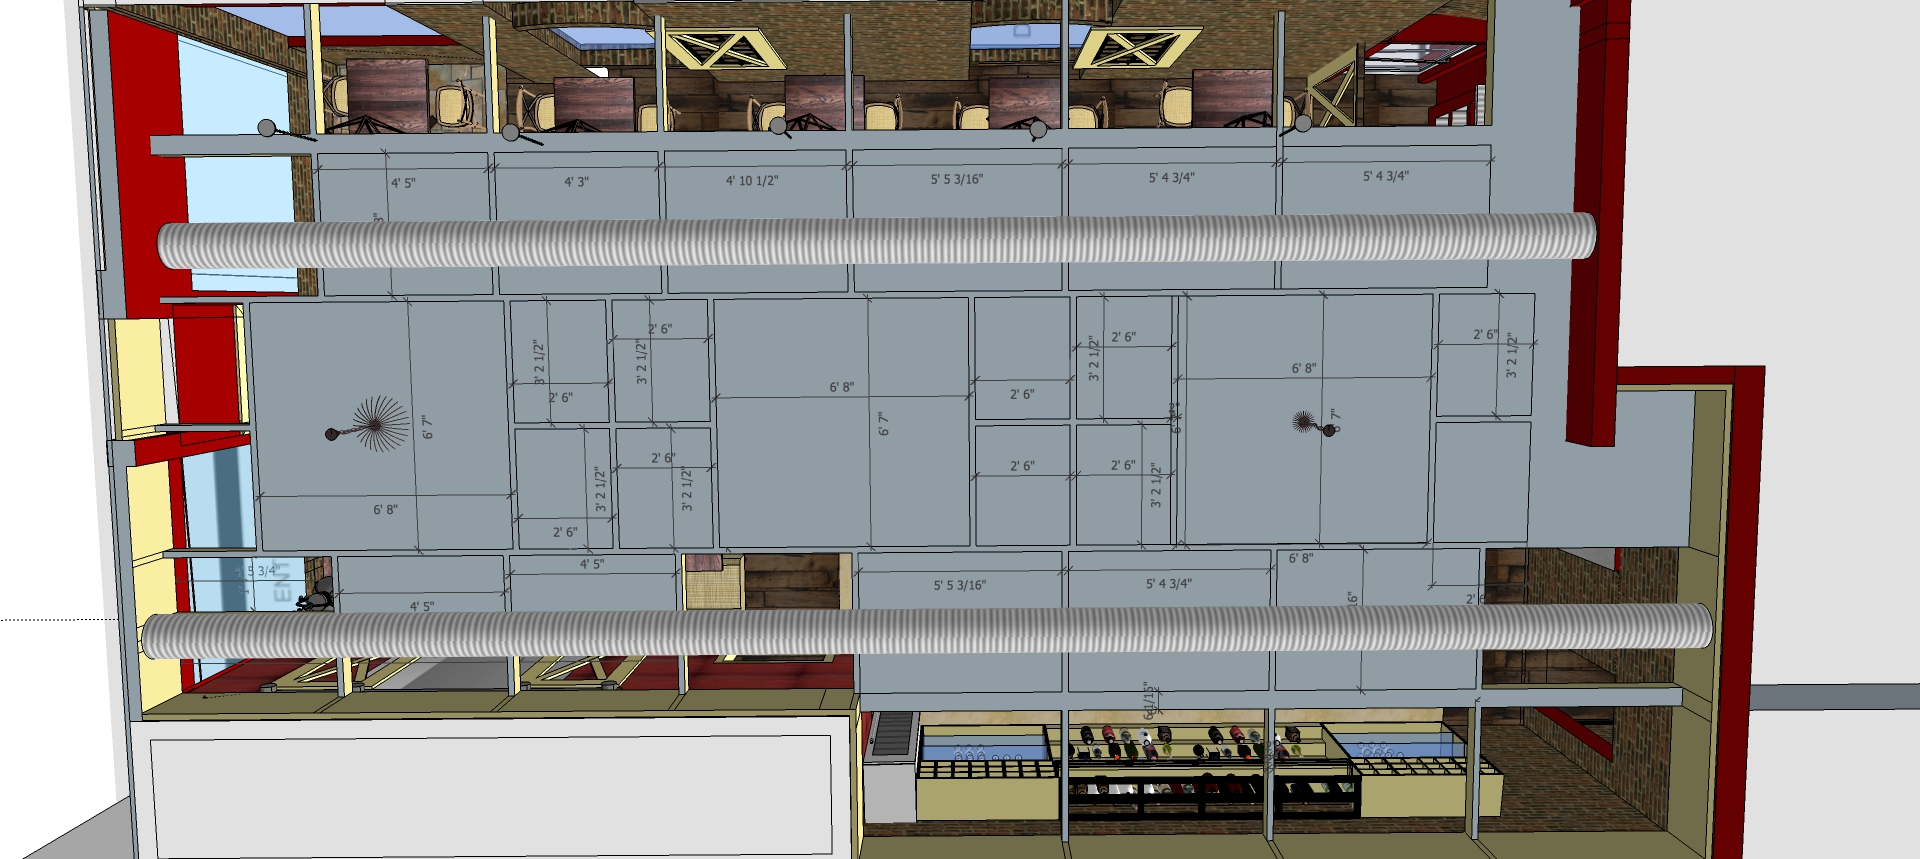 Ceiling grid Overview.jpg